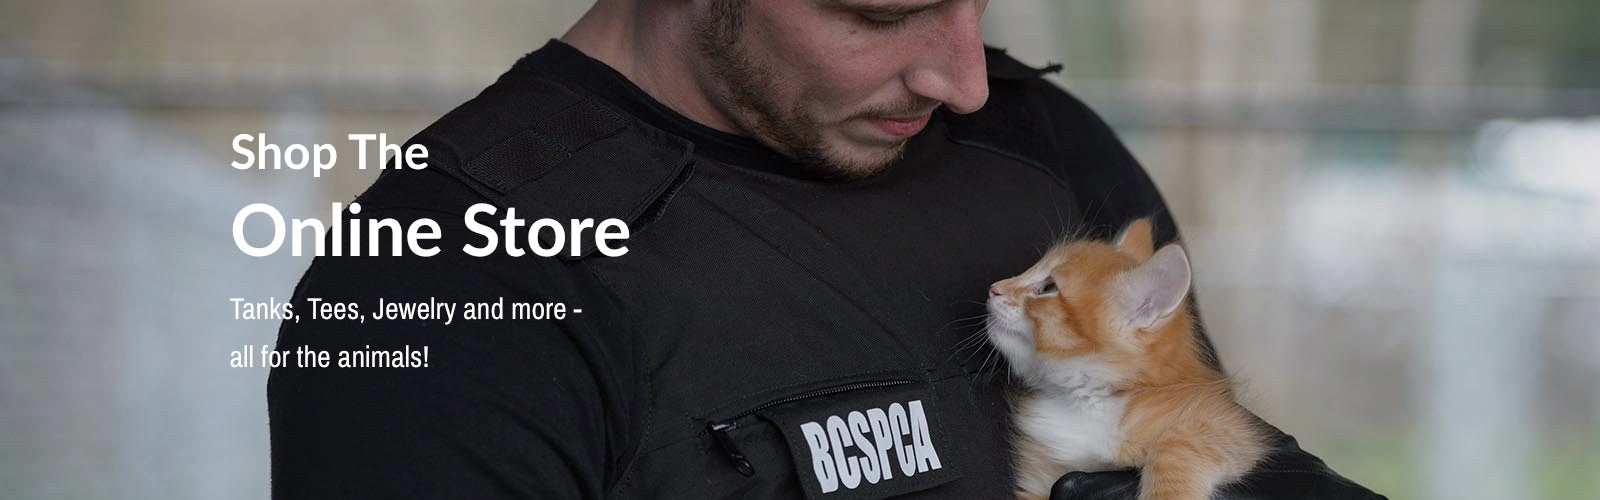 BC SPCA Online Store